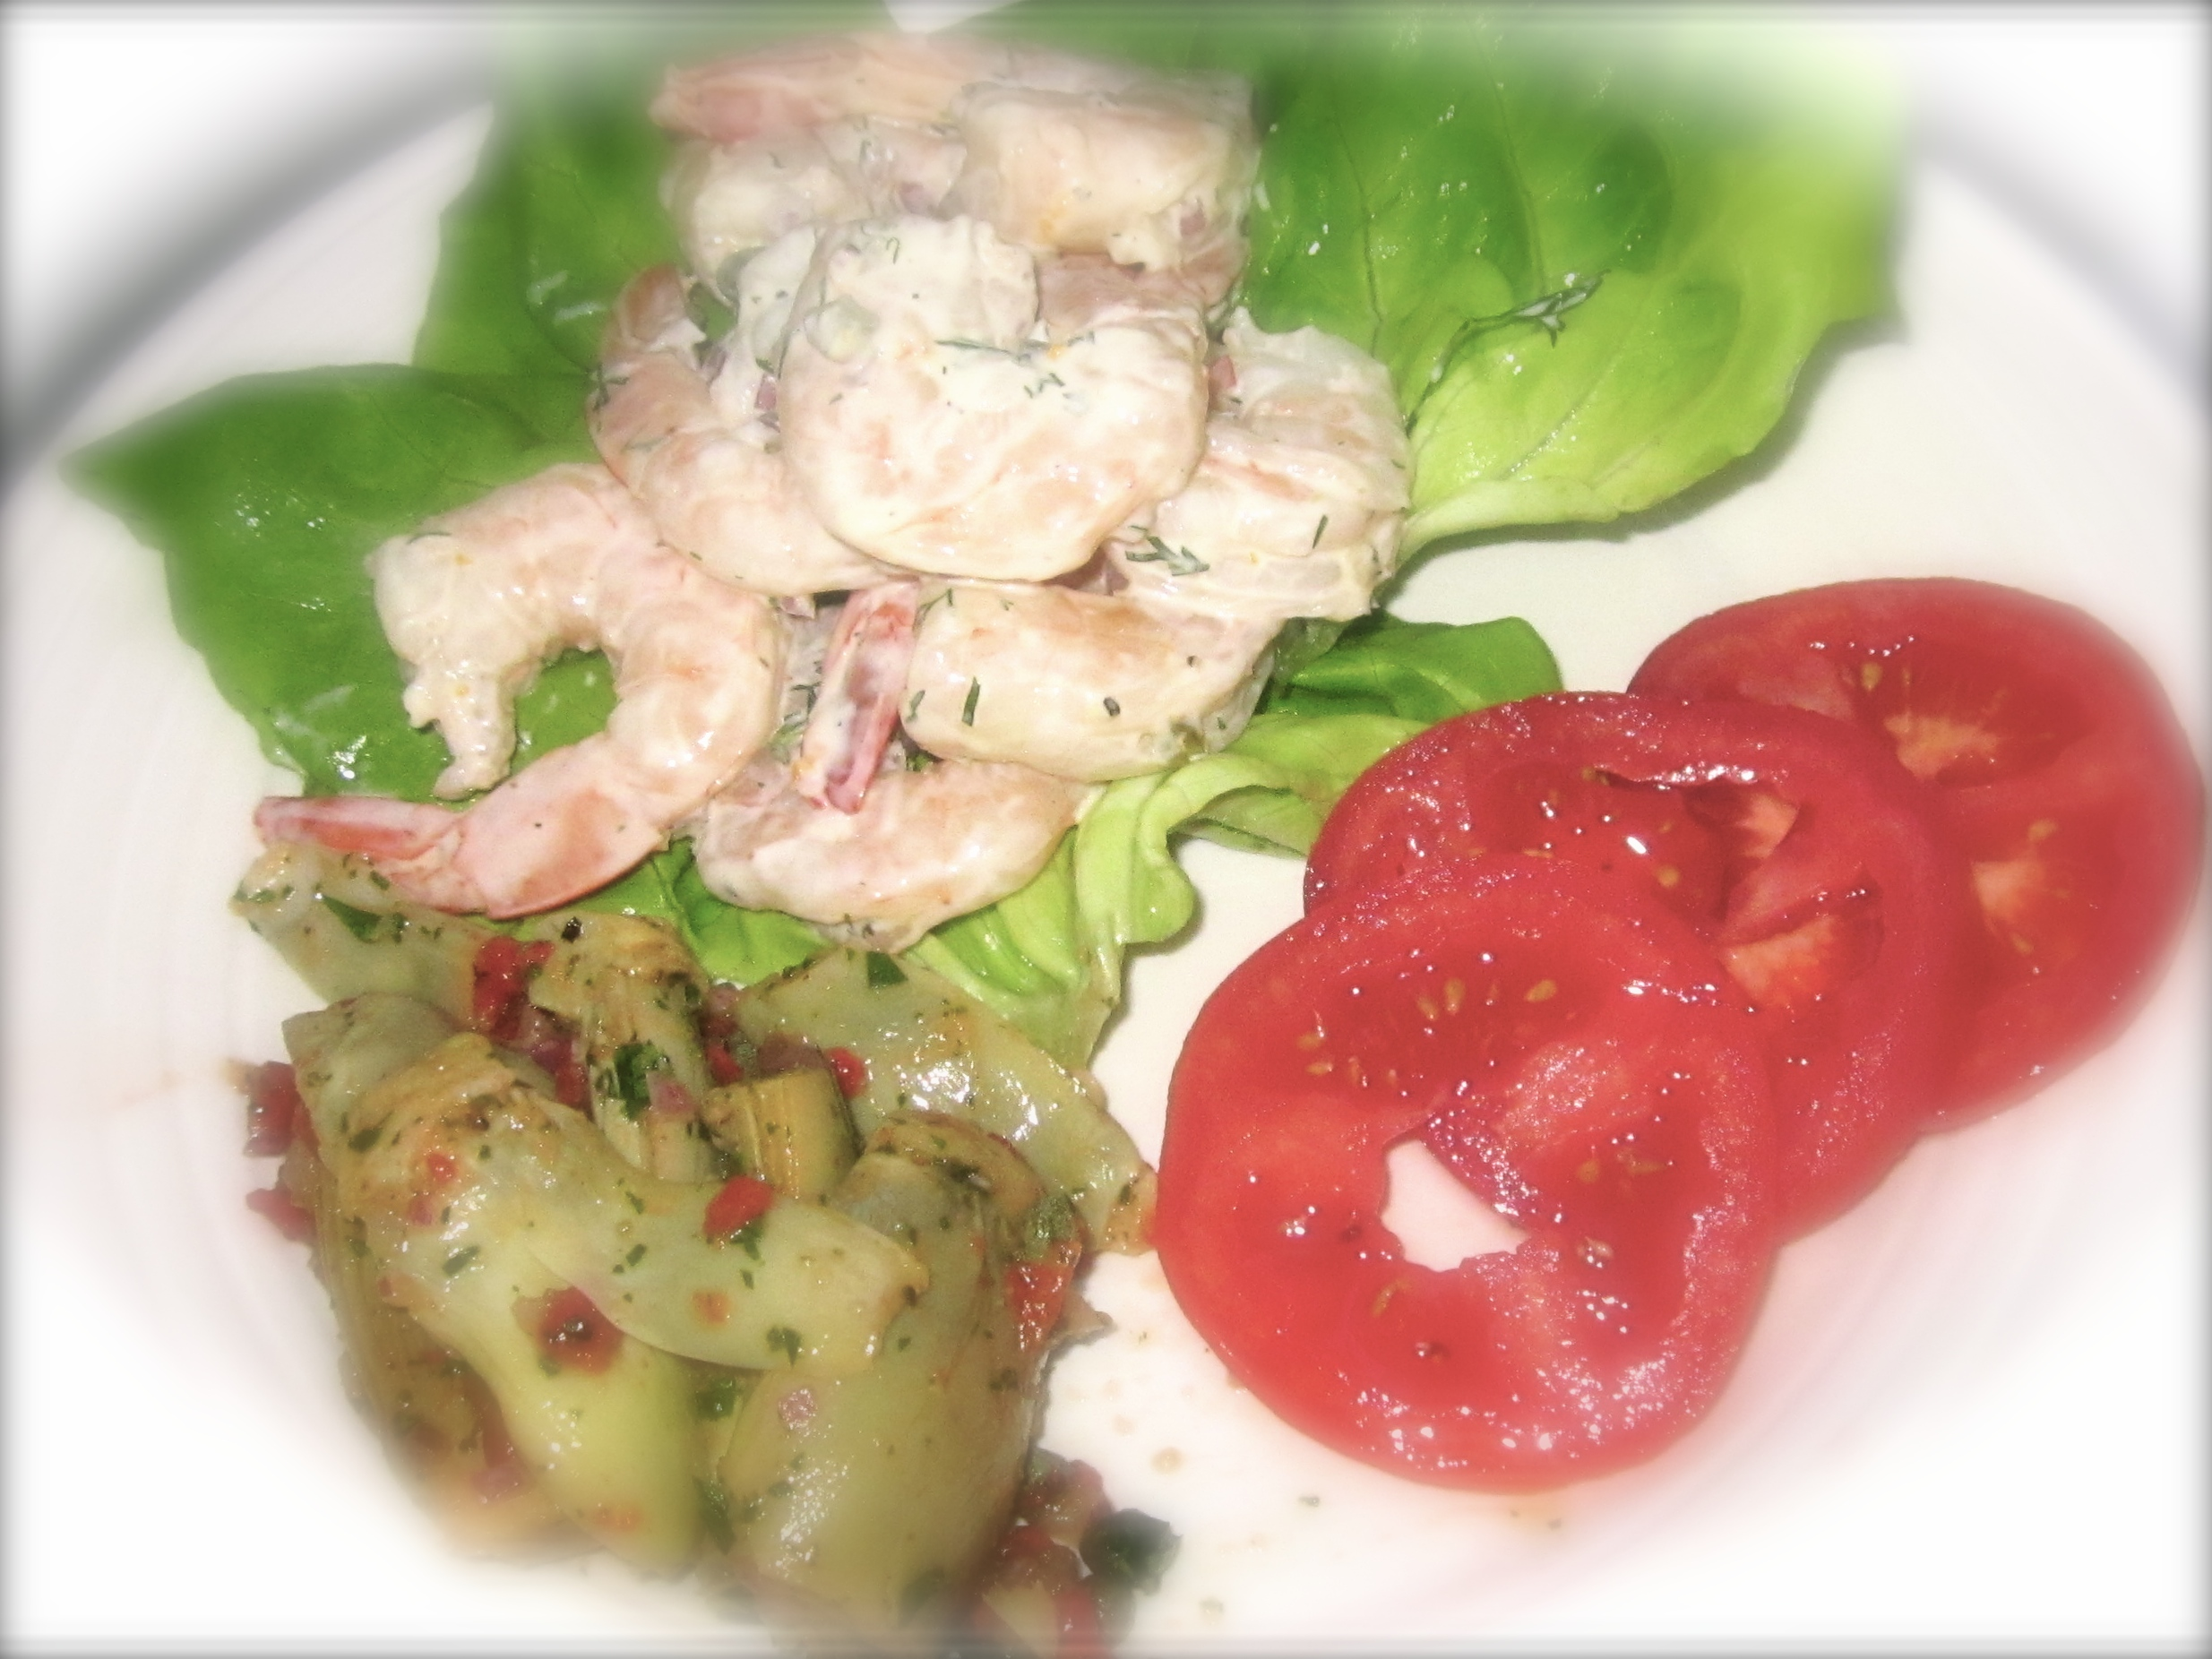 The best of the supper menu: Roasted Shrimp Salad, Roasted Artichoke Hearts and Colorado tomatoes.